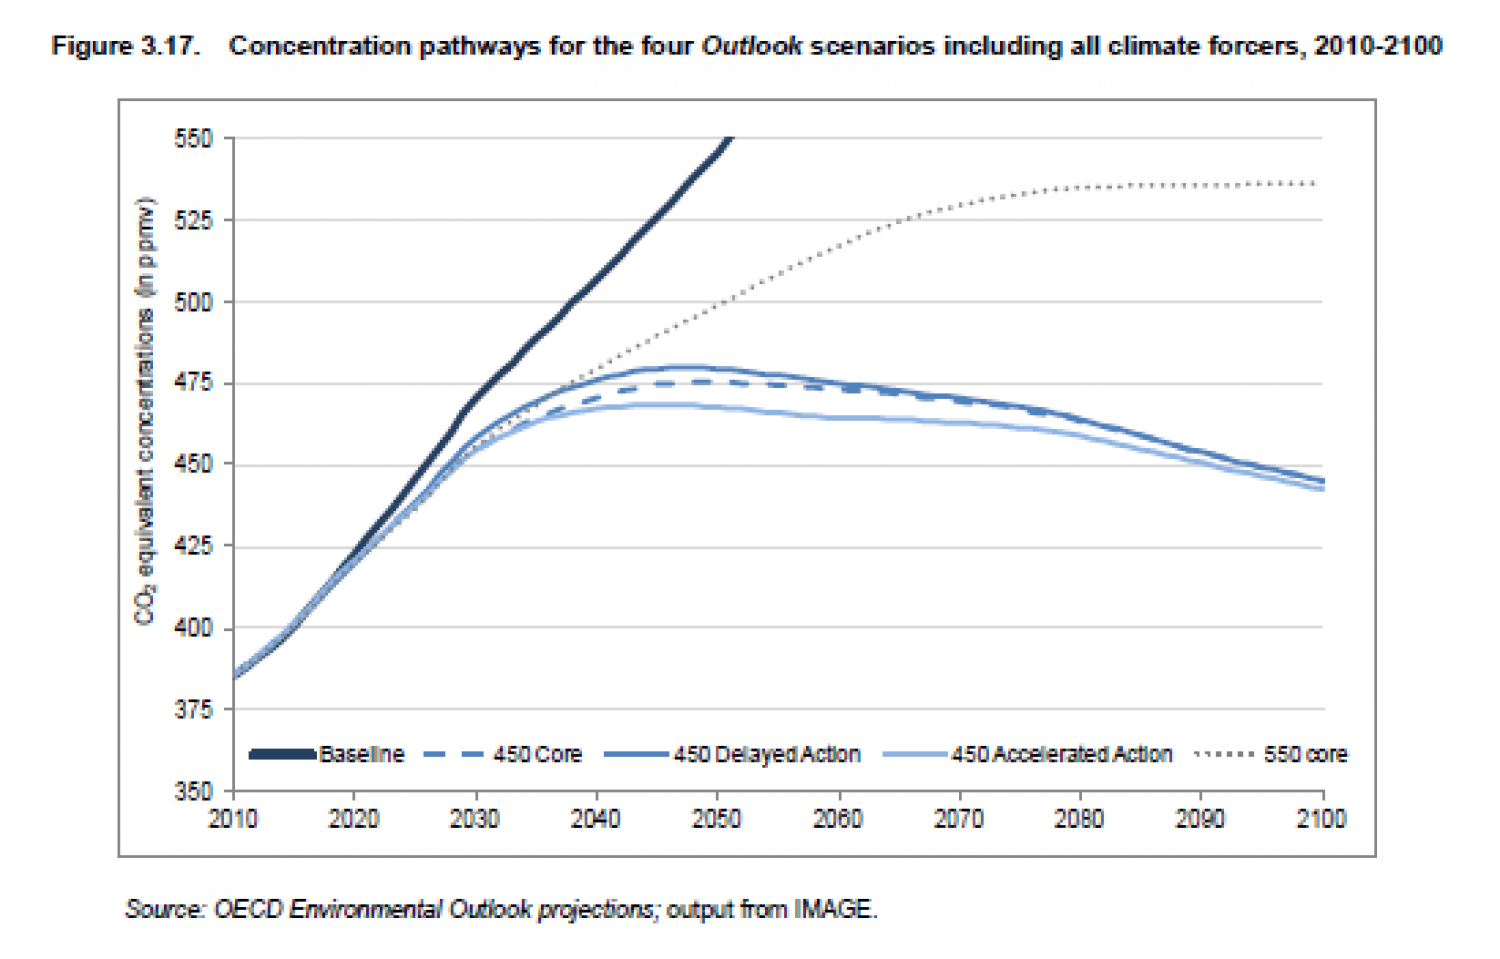 Concentration pathways for the four Outlook scenarios including all climate forcers, 2010-2100 Infographic